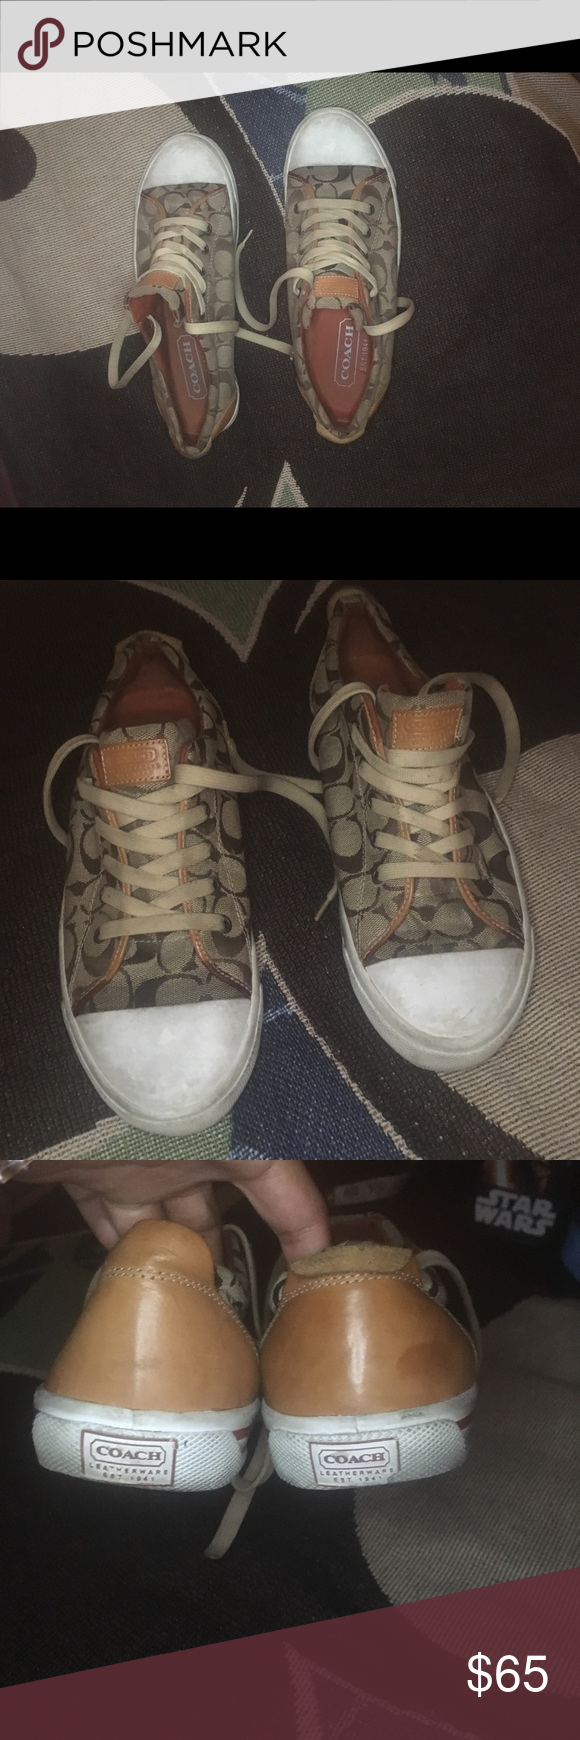 762e7885b ... netherlands vintage coach shoes vintage style purchased at macys size  10 very wearable havent wore in